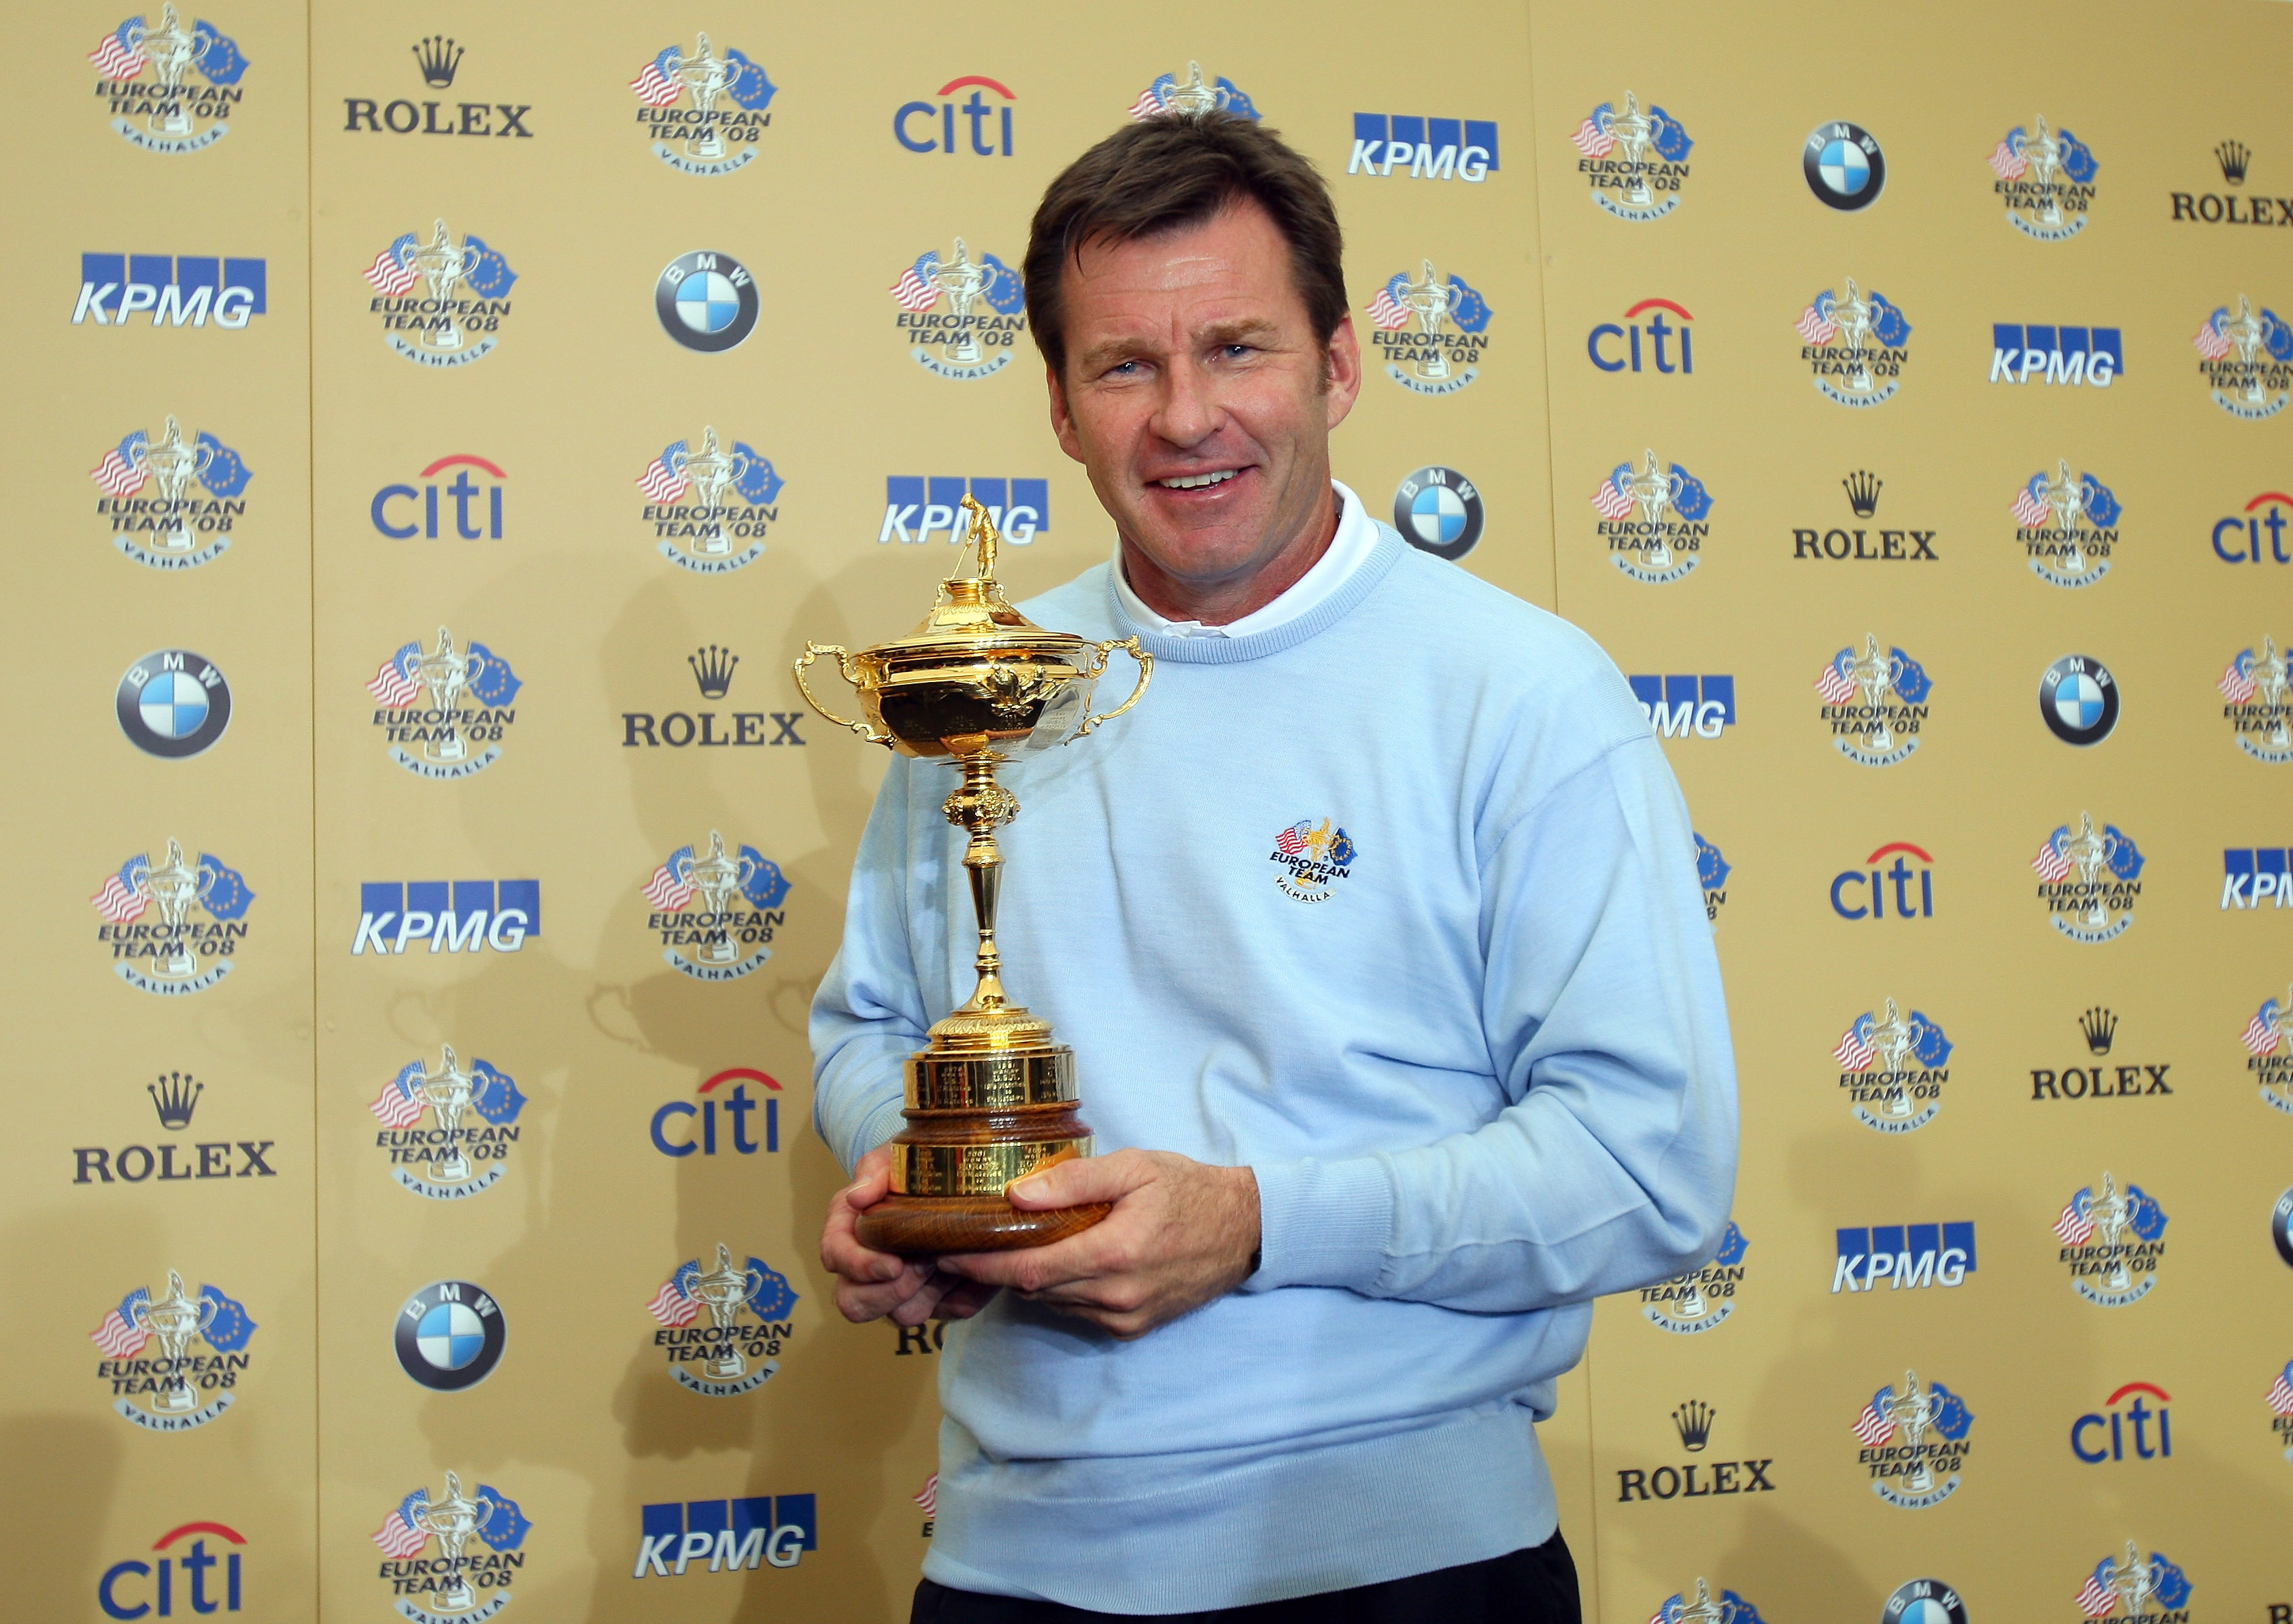 Sir Nick Faldo holds the record for the most Ryder Cup points with 25.